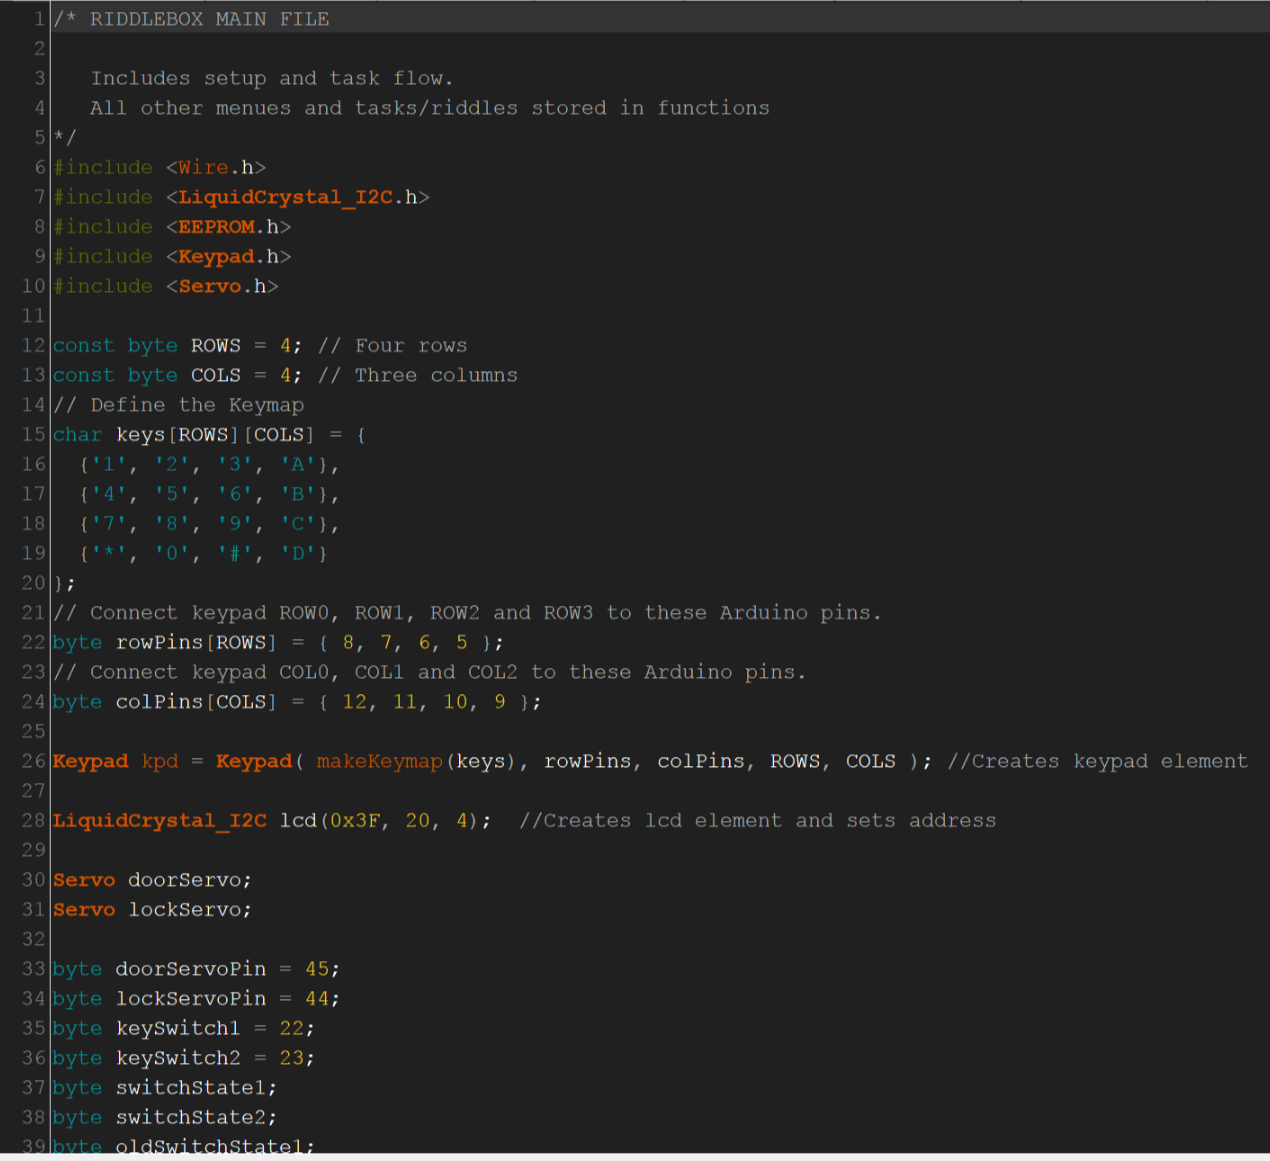 Picture of Arduino Code and Riddles